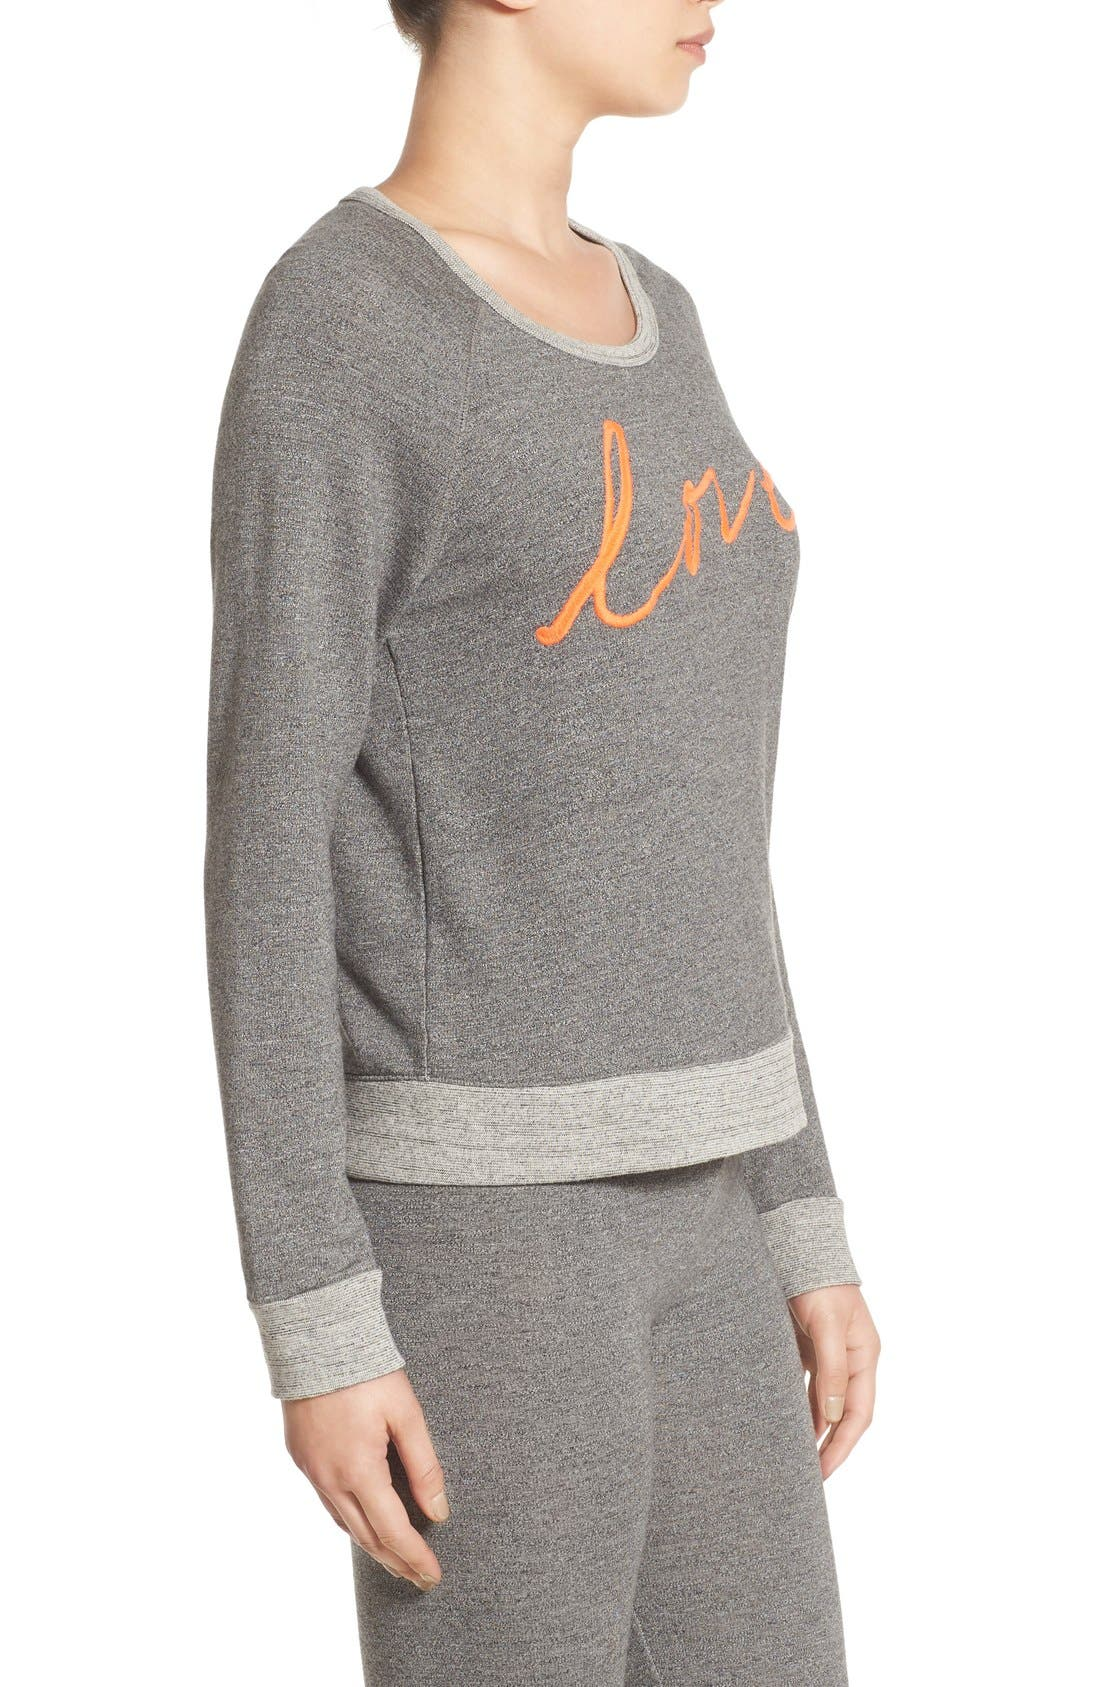 'Love' Pullover Sweatshirt,                             Alternate thumbnail 6, color,                             039